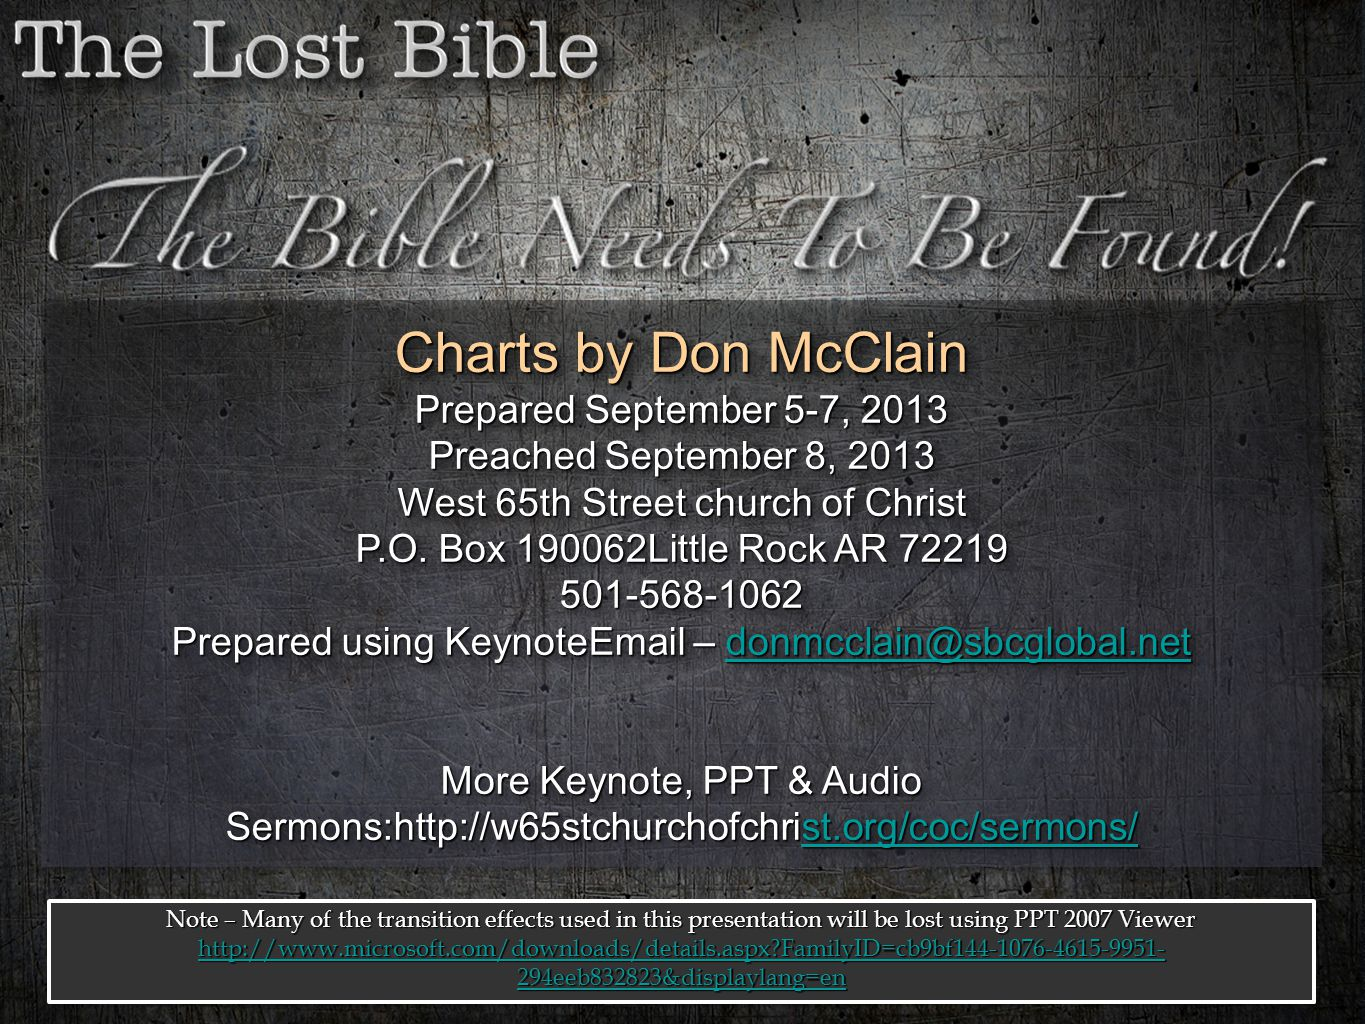 Charts by Don McClain Prepared September 5-7, 2013 Preached September 8, 2013 West 65th Street church of Christ P.O. Box 190062Little Rock AR 72219 50